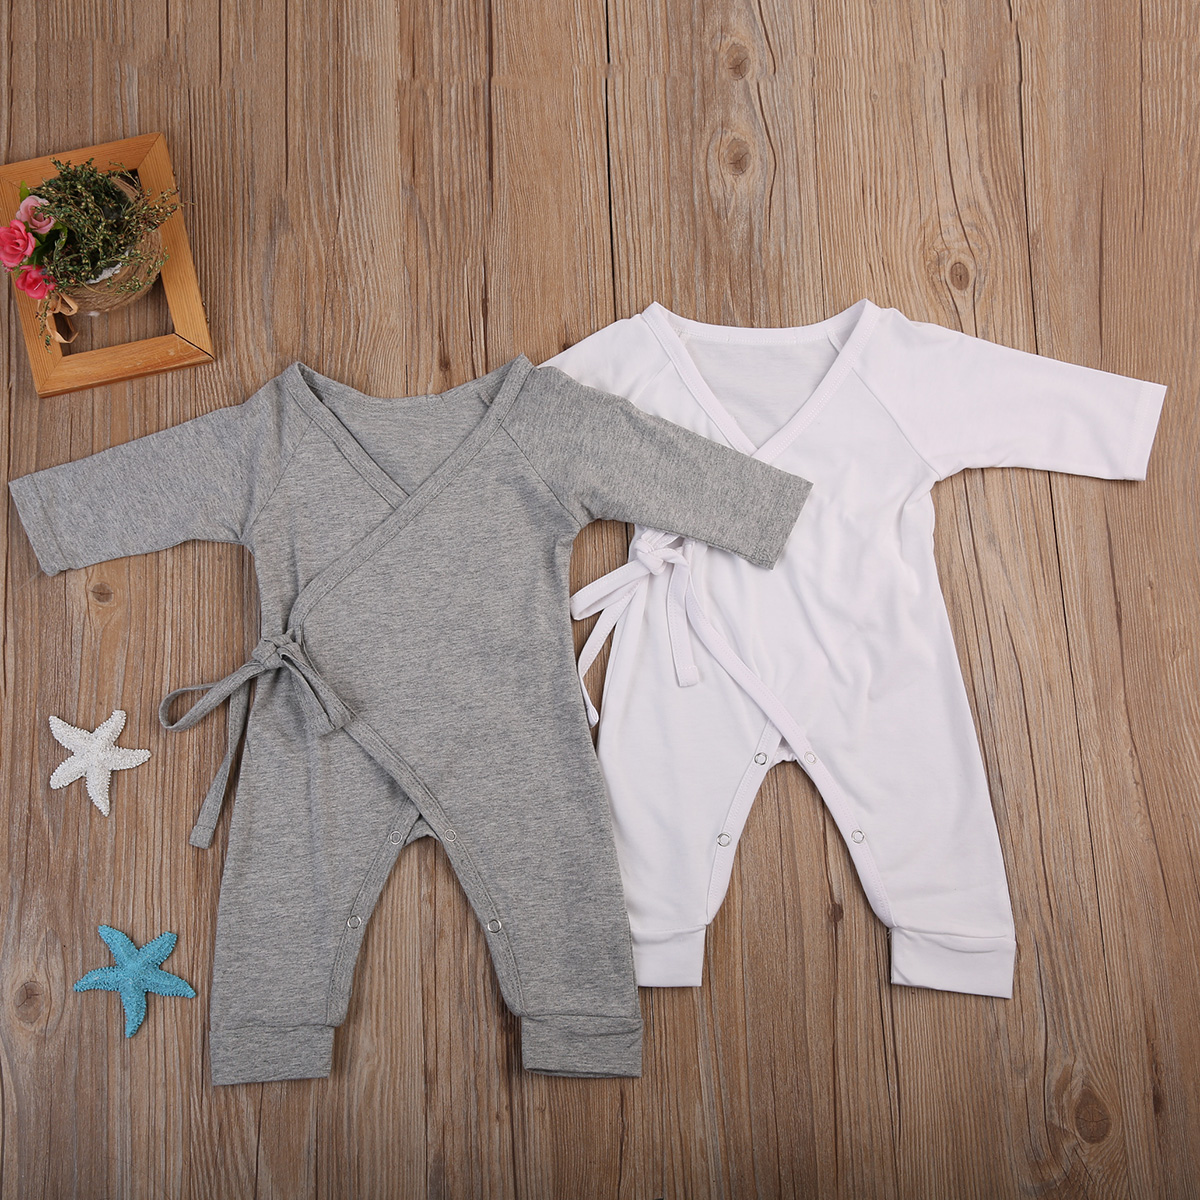 cute little wings baby romper autumn new long sleeves white gray newborn baby boys girls romper cotton jumpsuit outfits cute back wings baby rompers long sleeve gray white cotton kids boy girls romper jumpsuit infant baby autumn clothes outfits